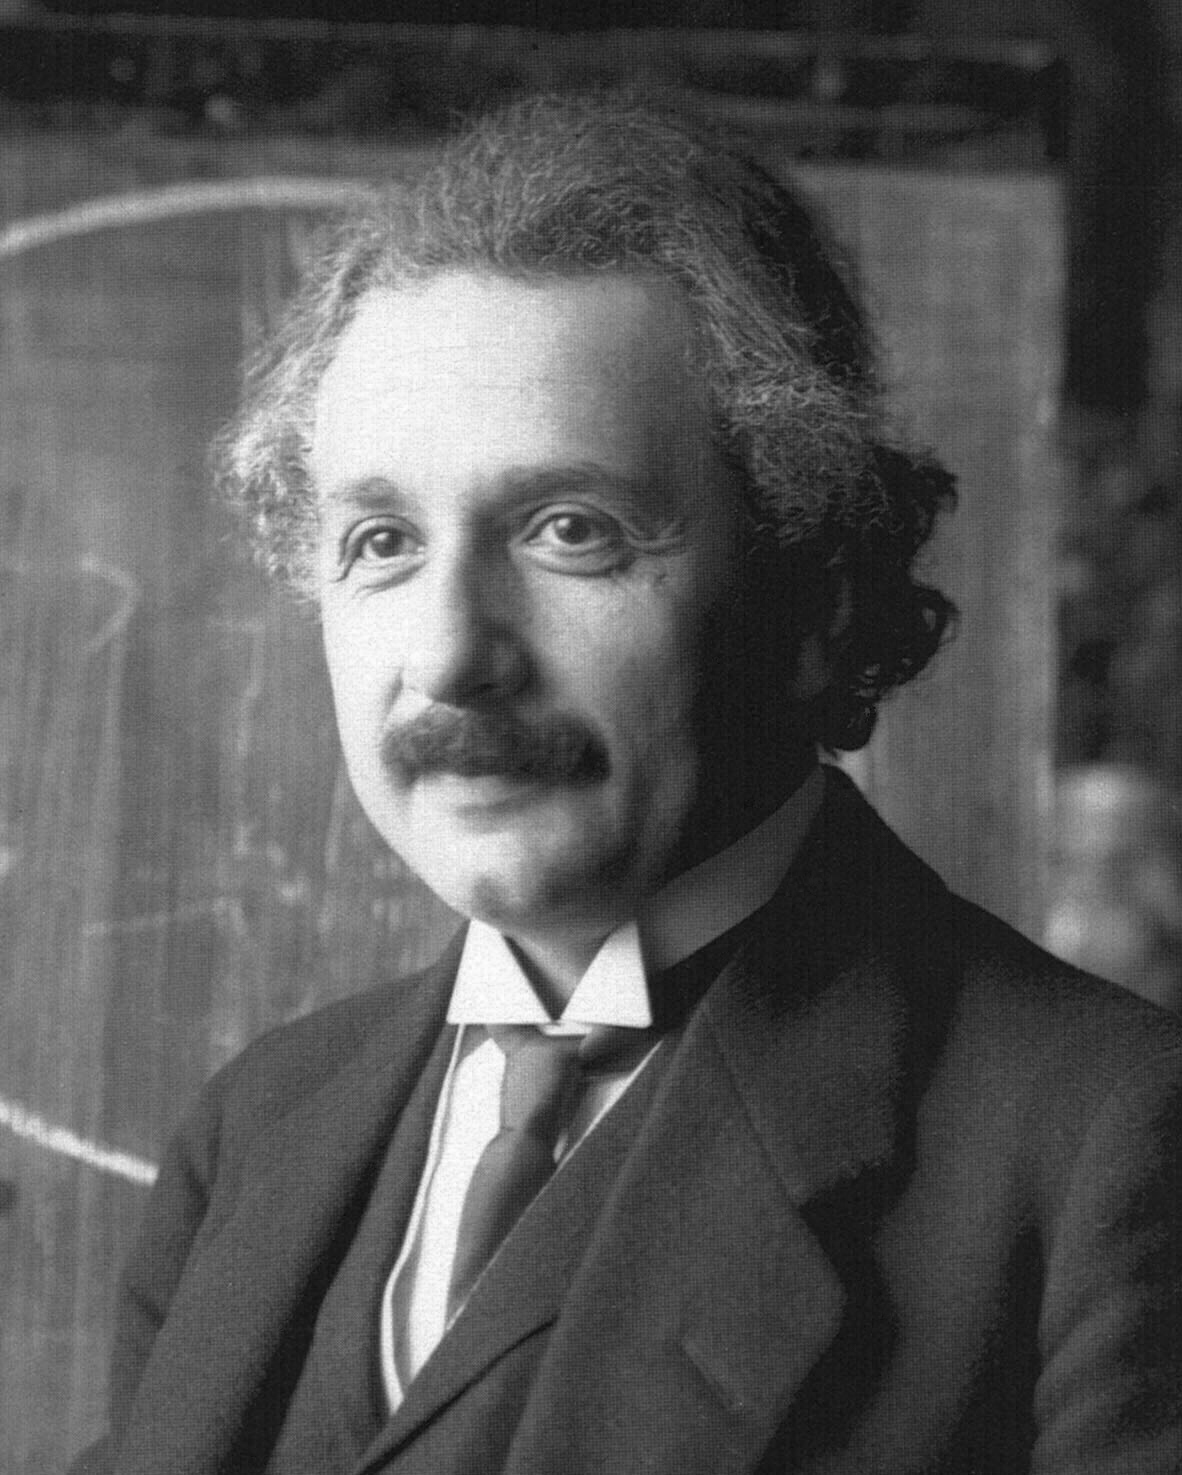 albert enstine 1073 quotes from albert einstein: 'two things are infinite: the universe and human stupidity and i'm not sure about the universe', 'there are only two ways to live your life.